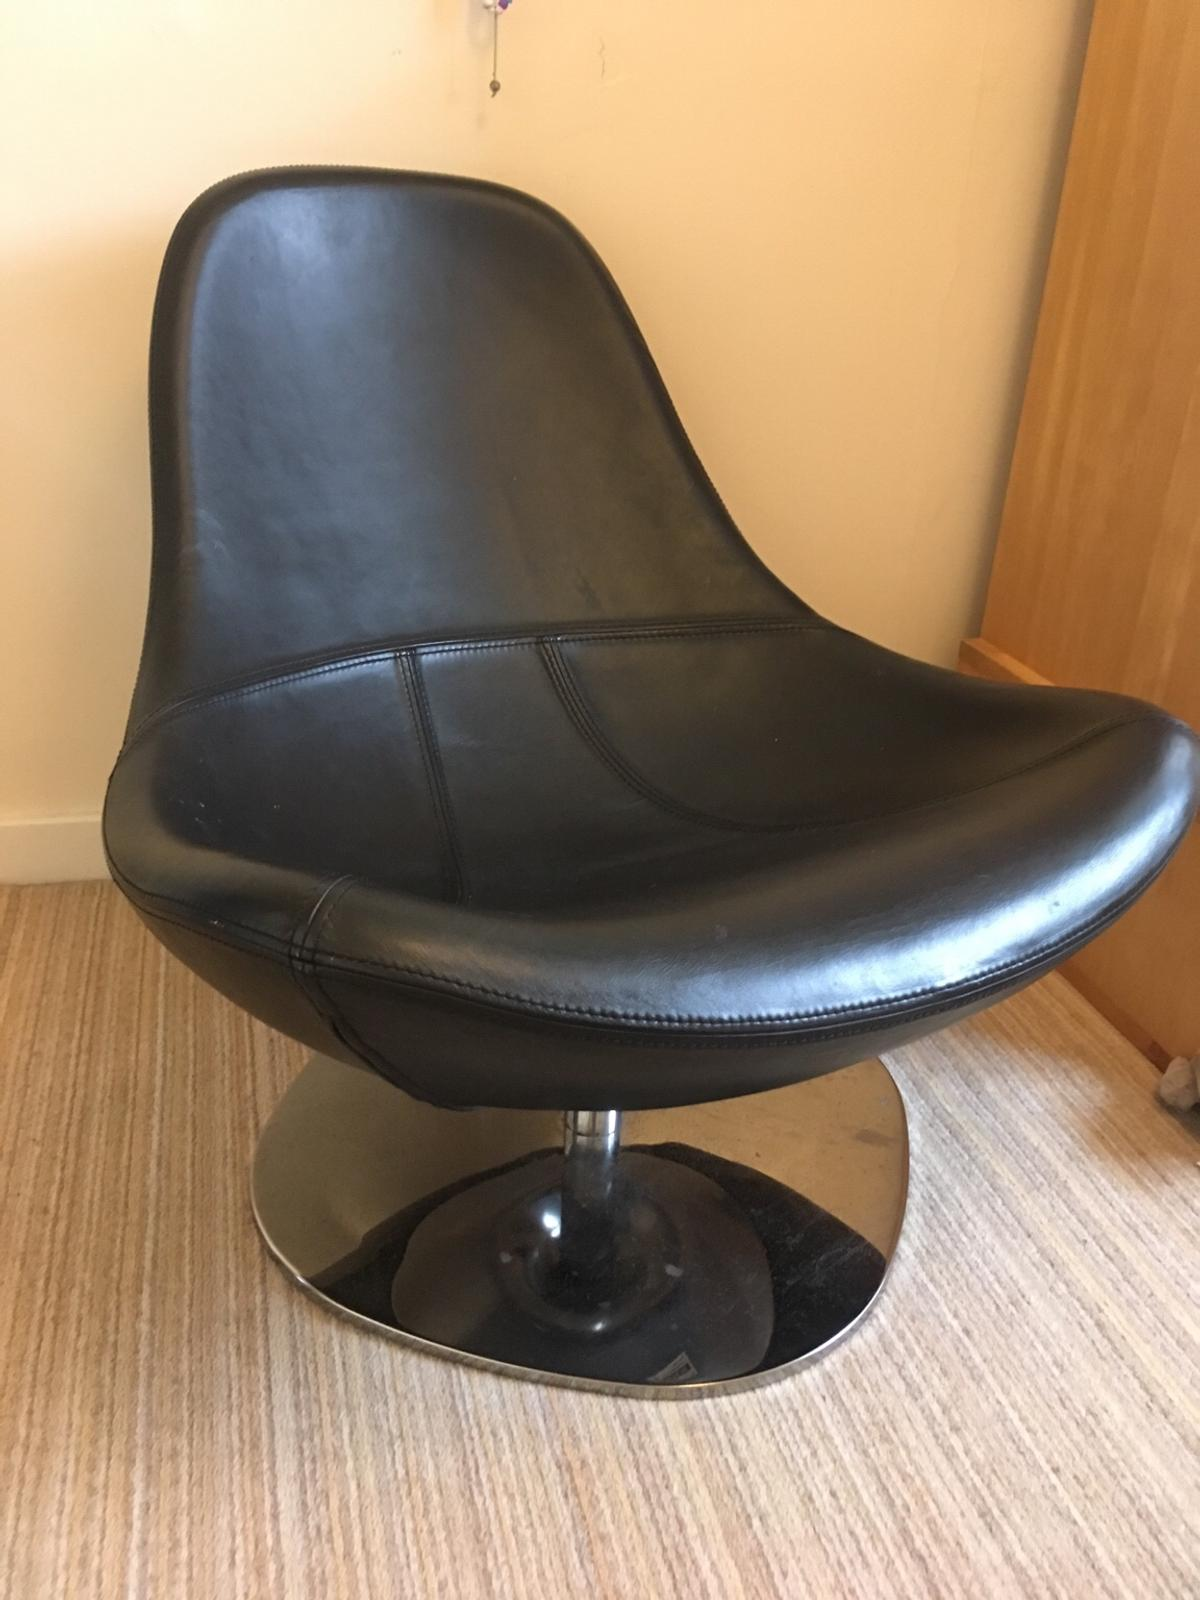 Ikea Swivel Armchair In Hd6 Calderdale For 50 00 For Sale Shpock